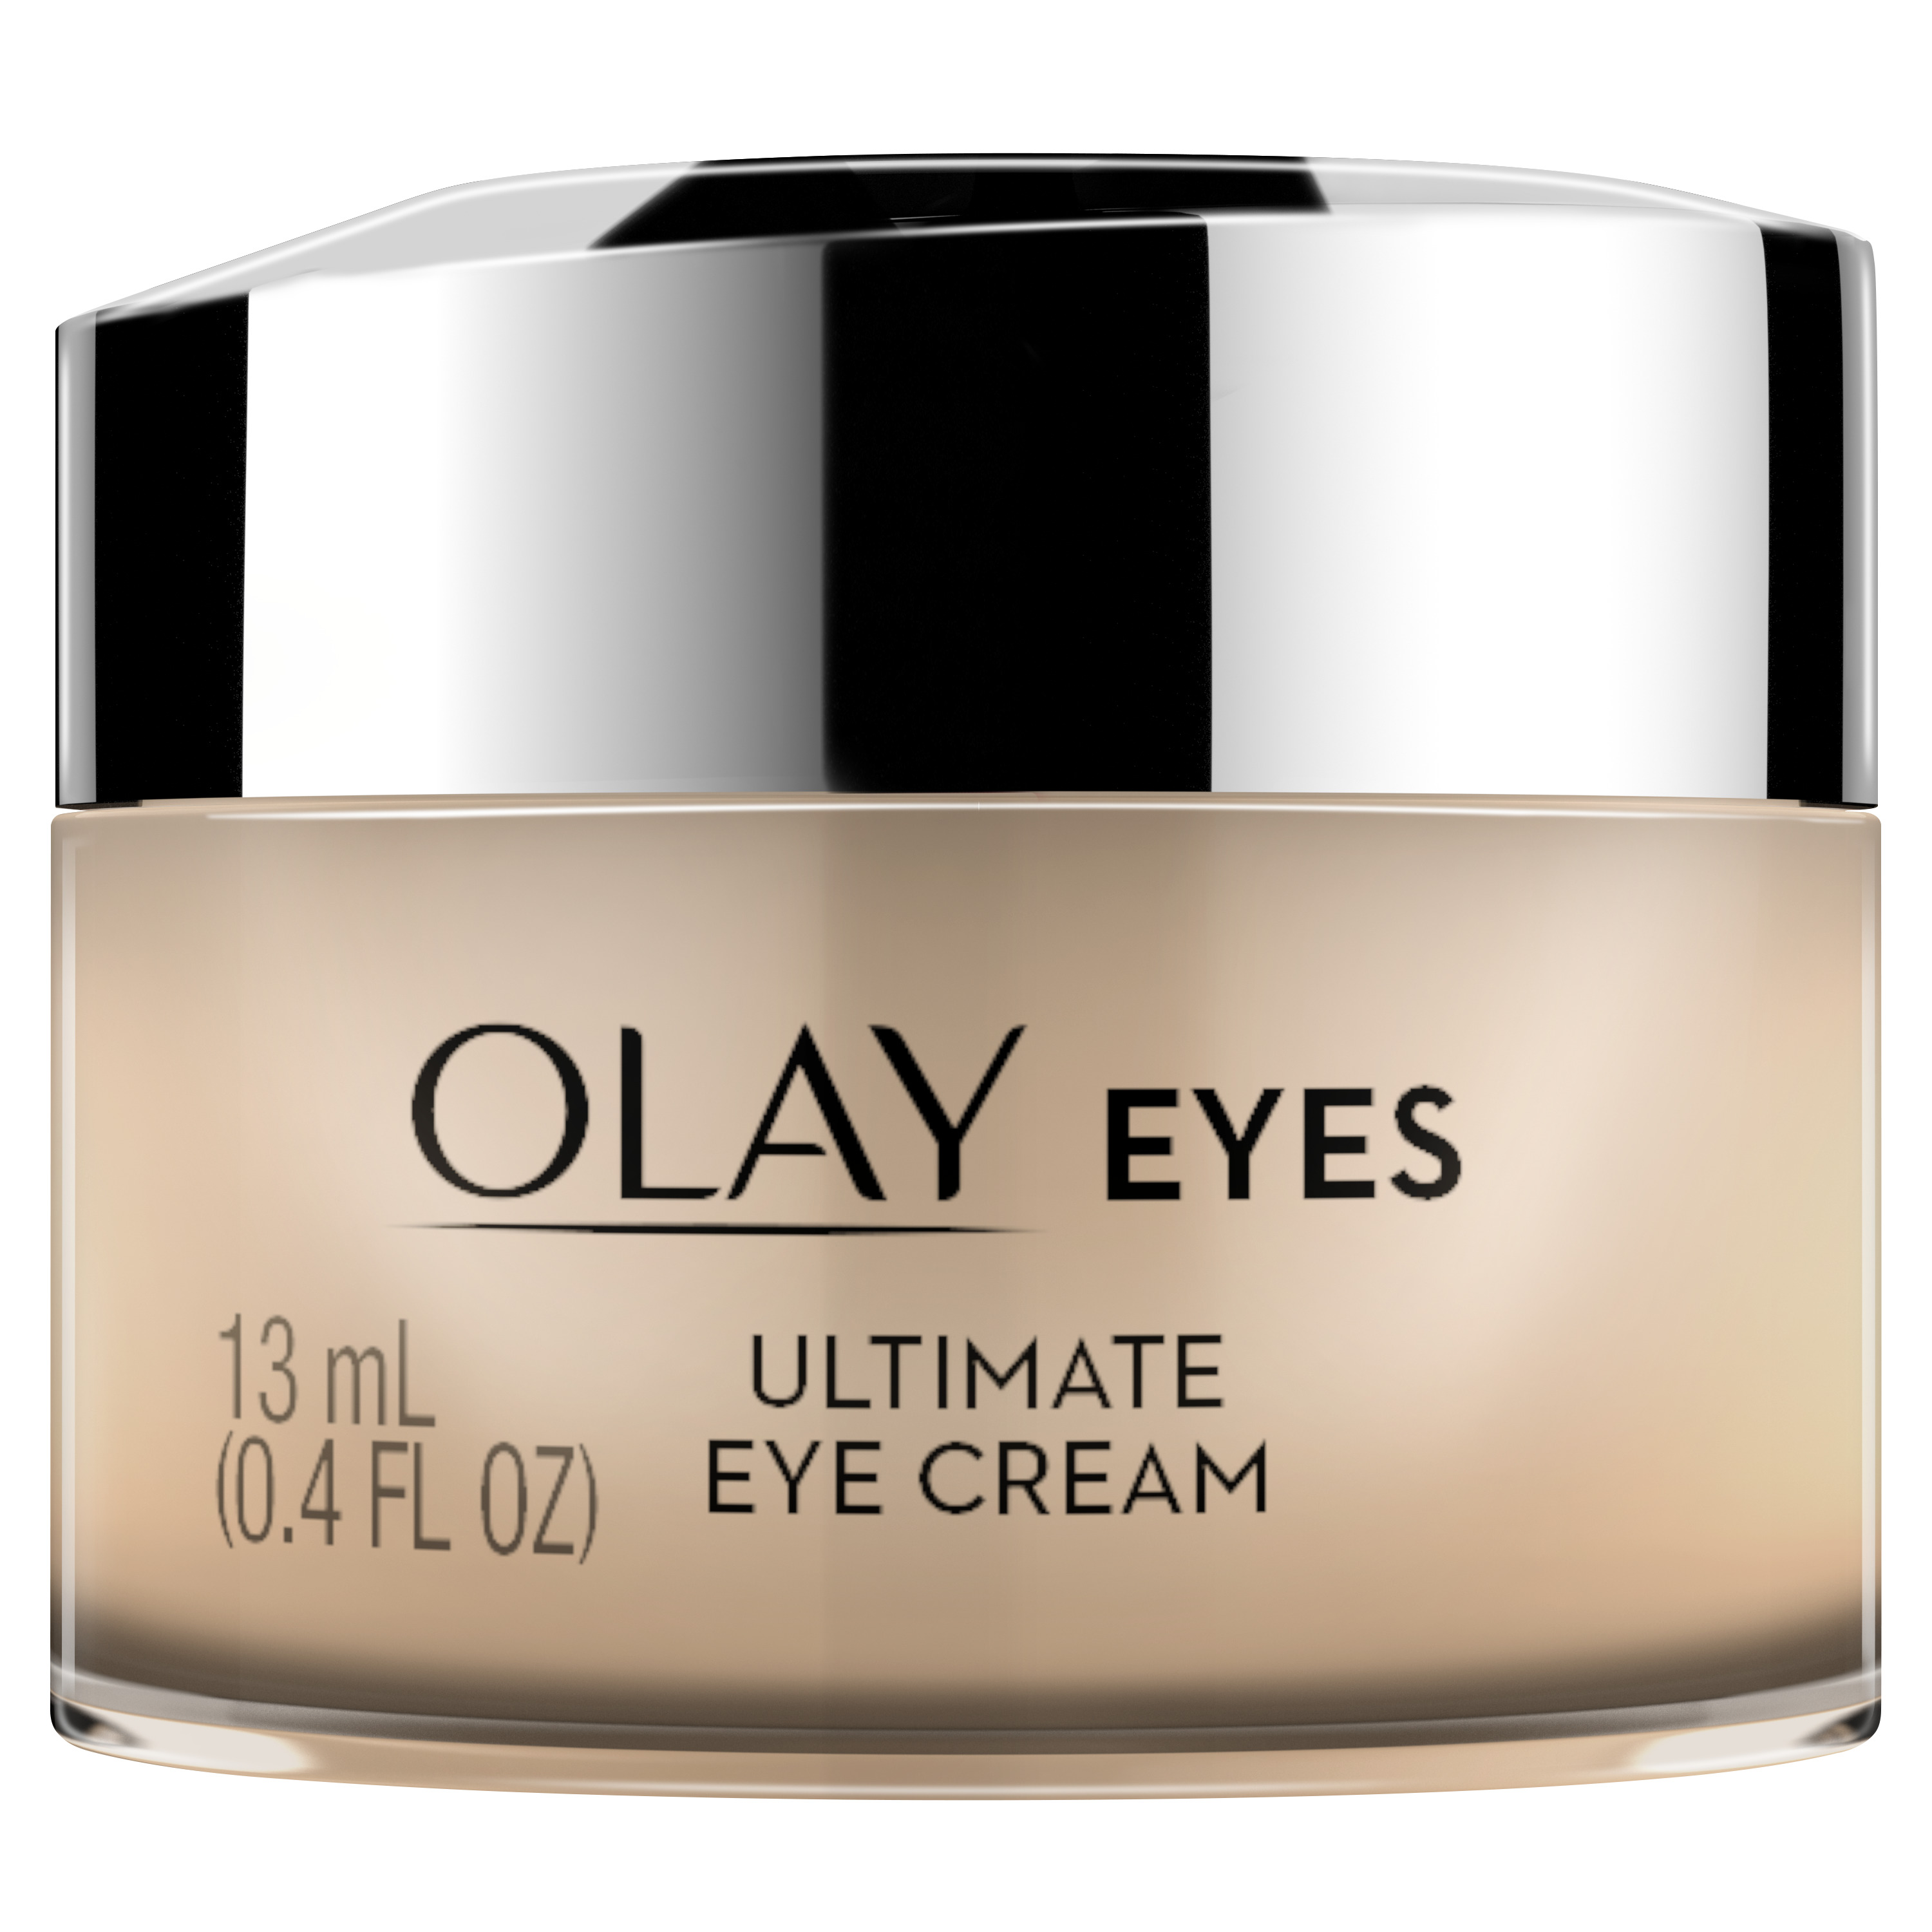 Olay Eyes Ultimate Eye Cream for wrinkles, puffy eyes, and dark circles ($20 Rebate Available), 0.4 fl oz